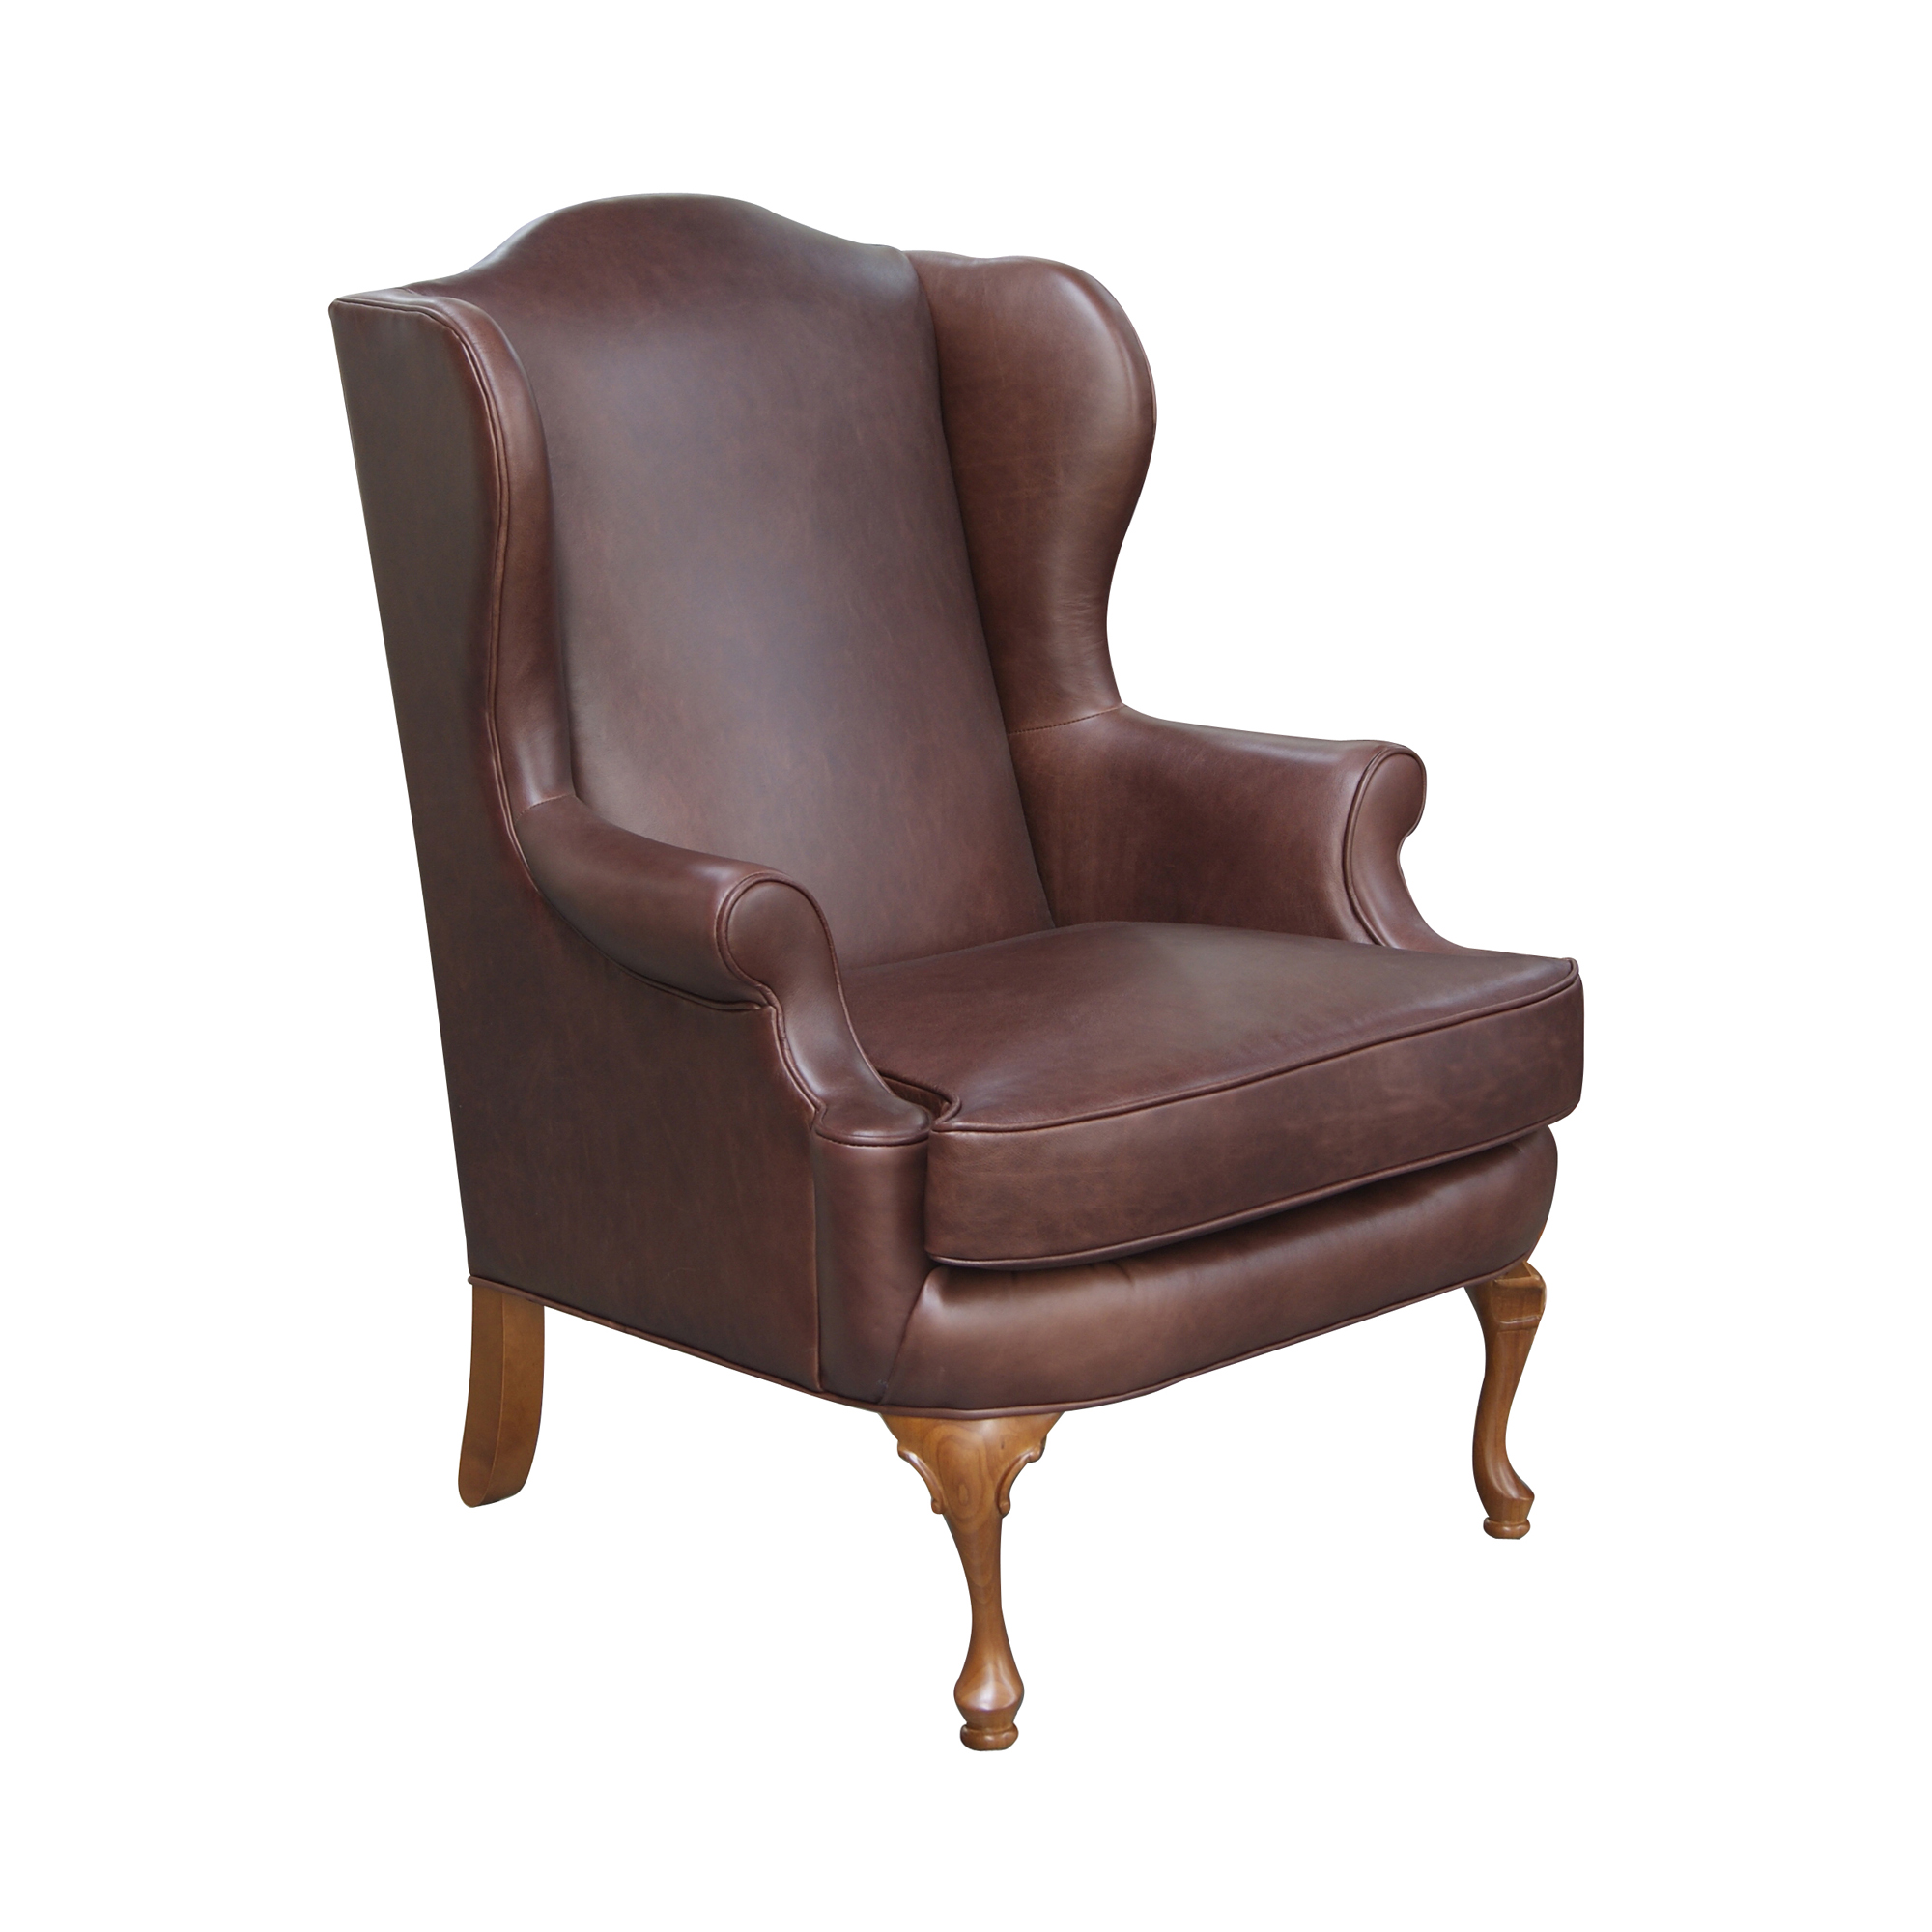 Boston Chair And Ottoman Moran Furniture